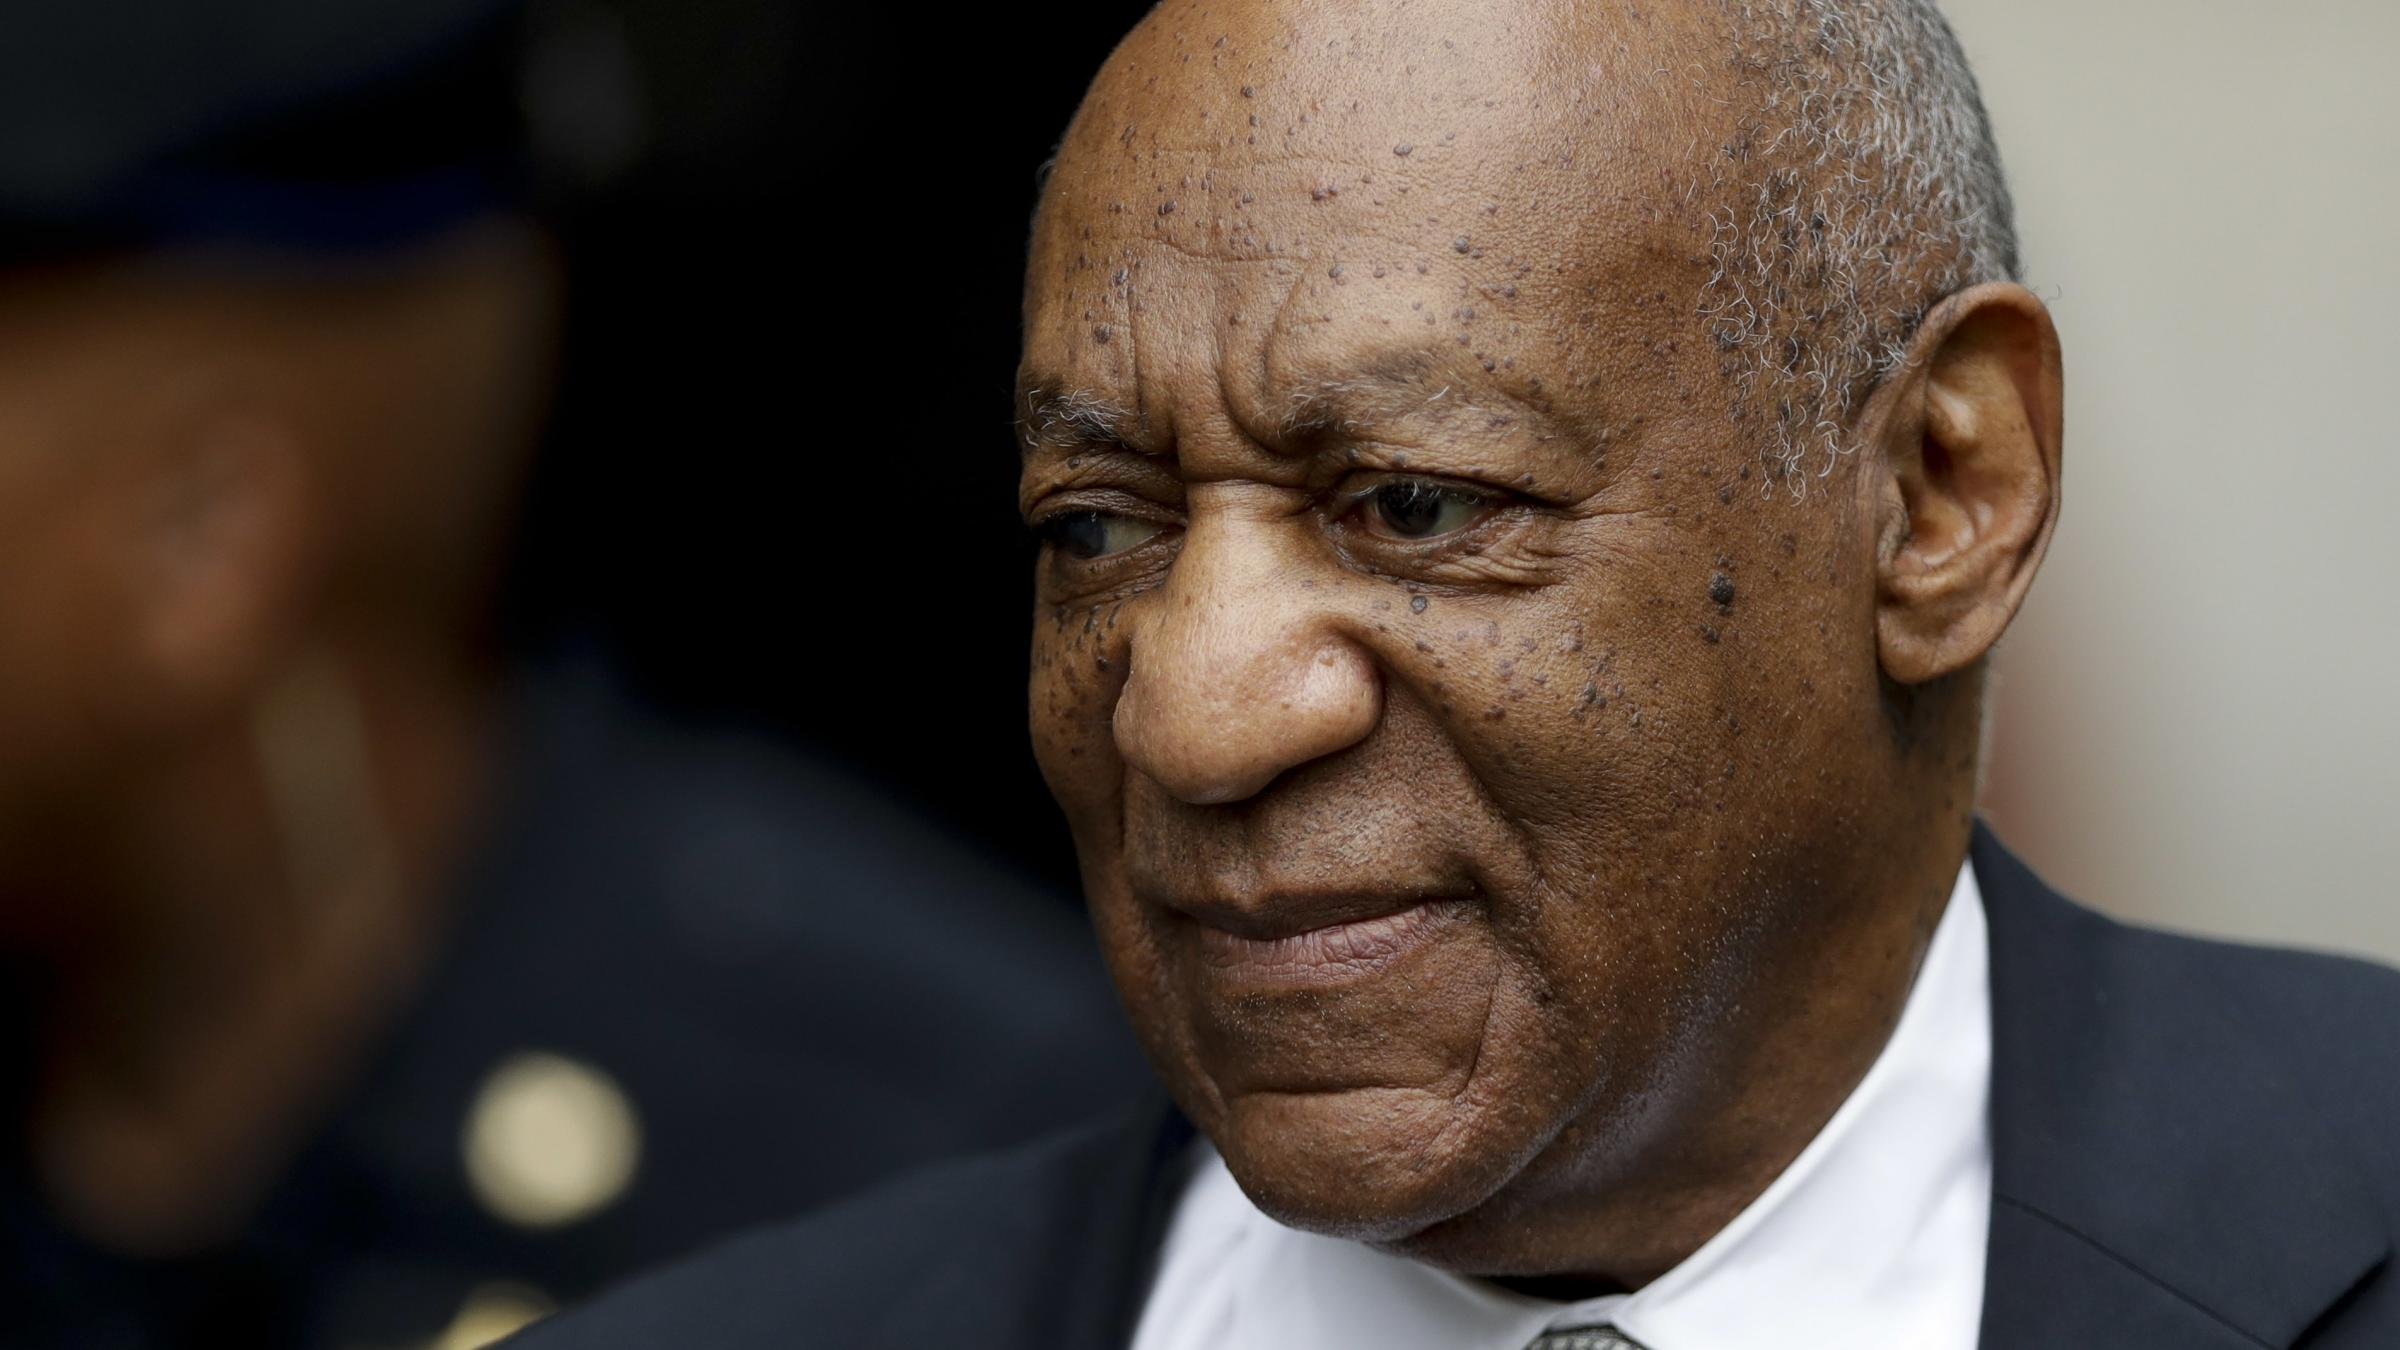 'It's Painful': Cosby Accusers React to Mistrial